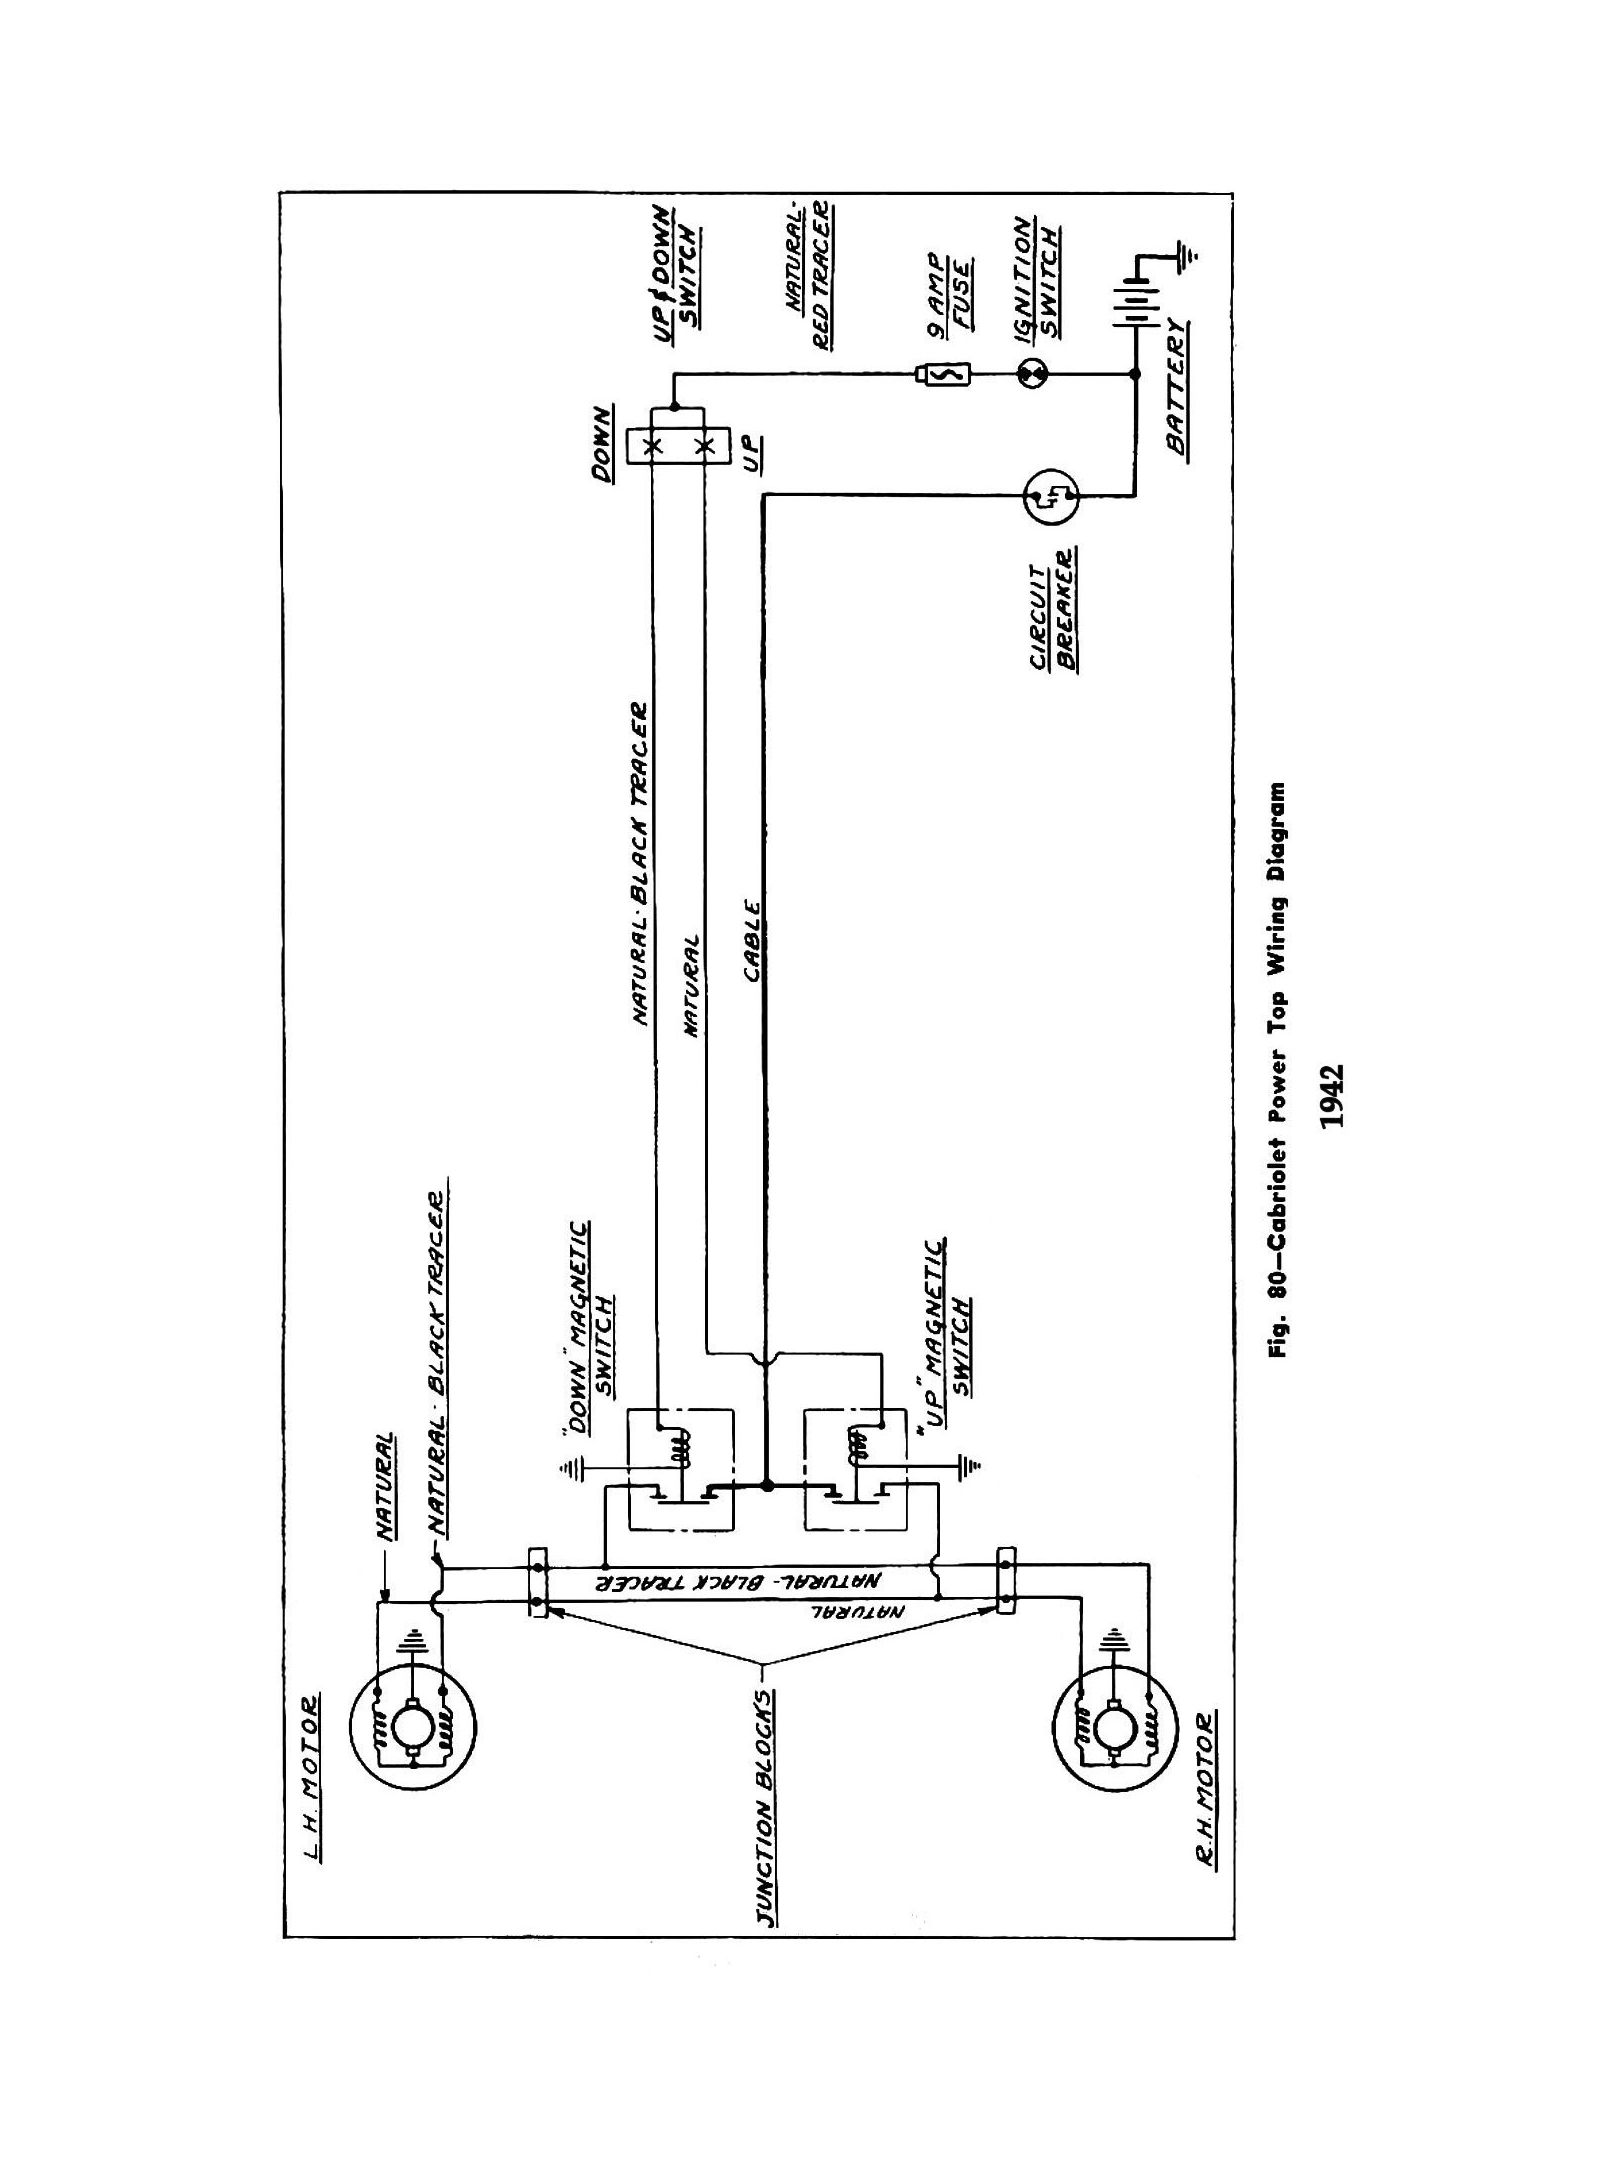 chevy wiring diagrams rh chevy oldcarmanualproject com Dodge Ram Wiring Schematics Dodge Truck Wiring Schematics